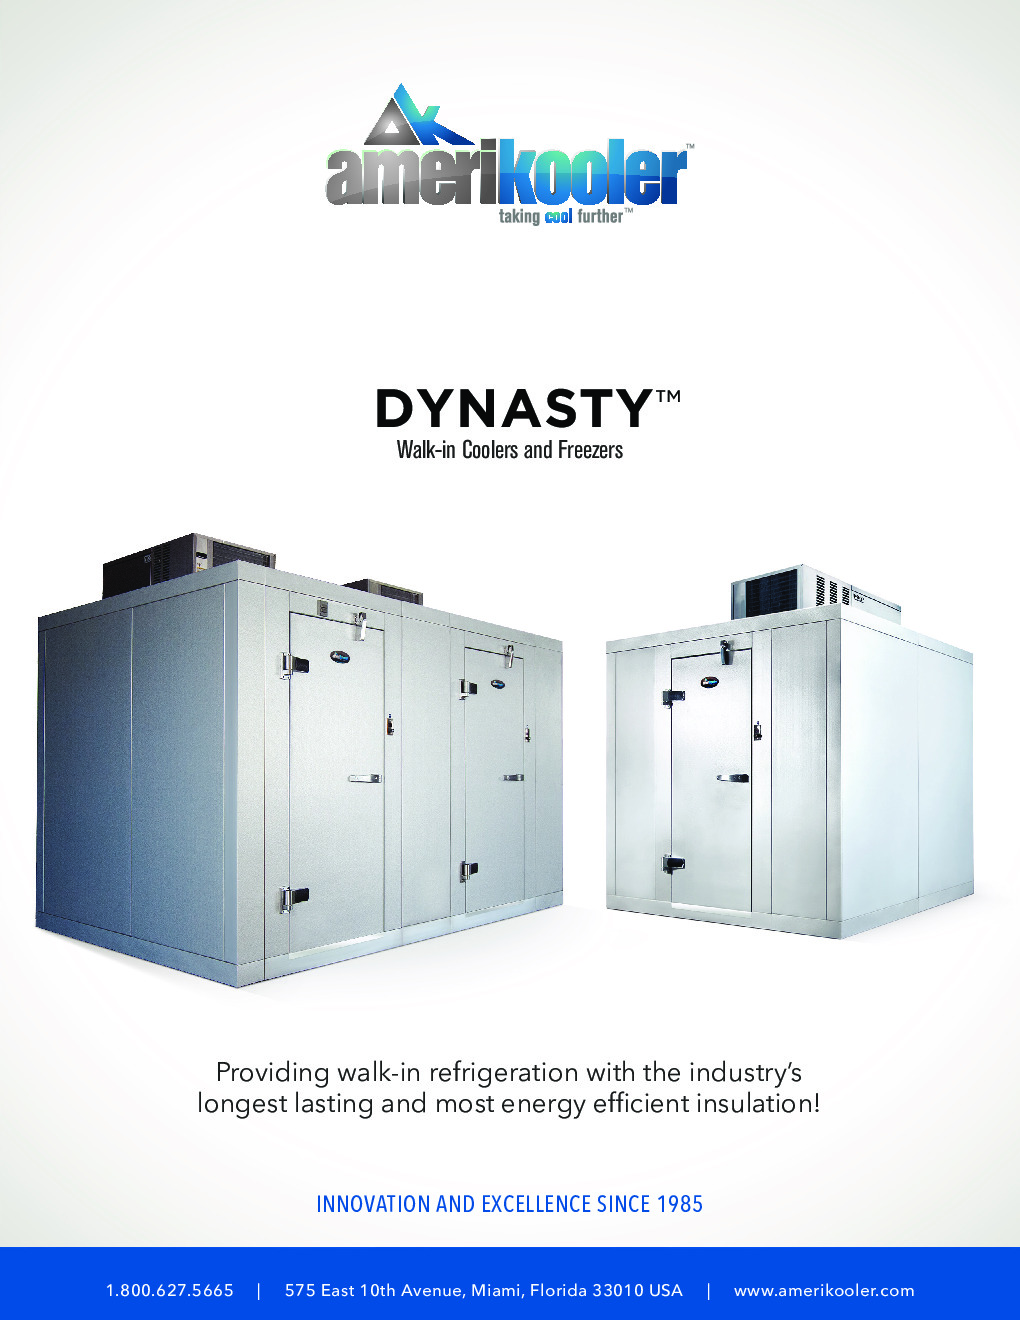 AmeriKooler DW091277N-6/6-RM 9' X 12' Walk-In Cooler, 6' L Cooler without Floor and 6' L Freezer, Remote